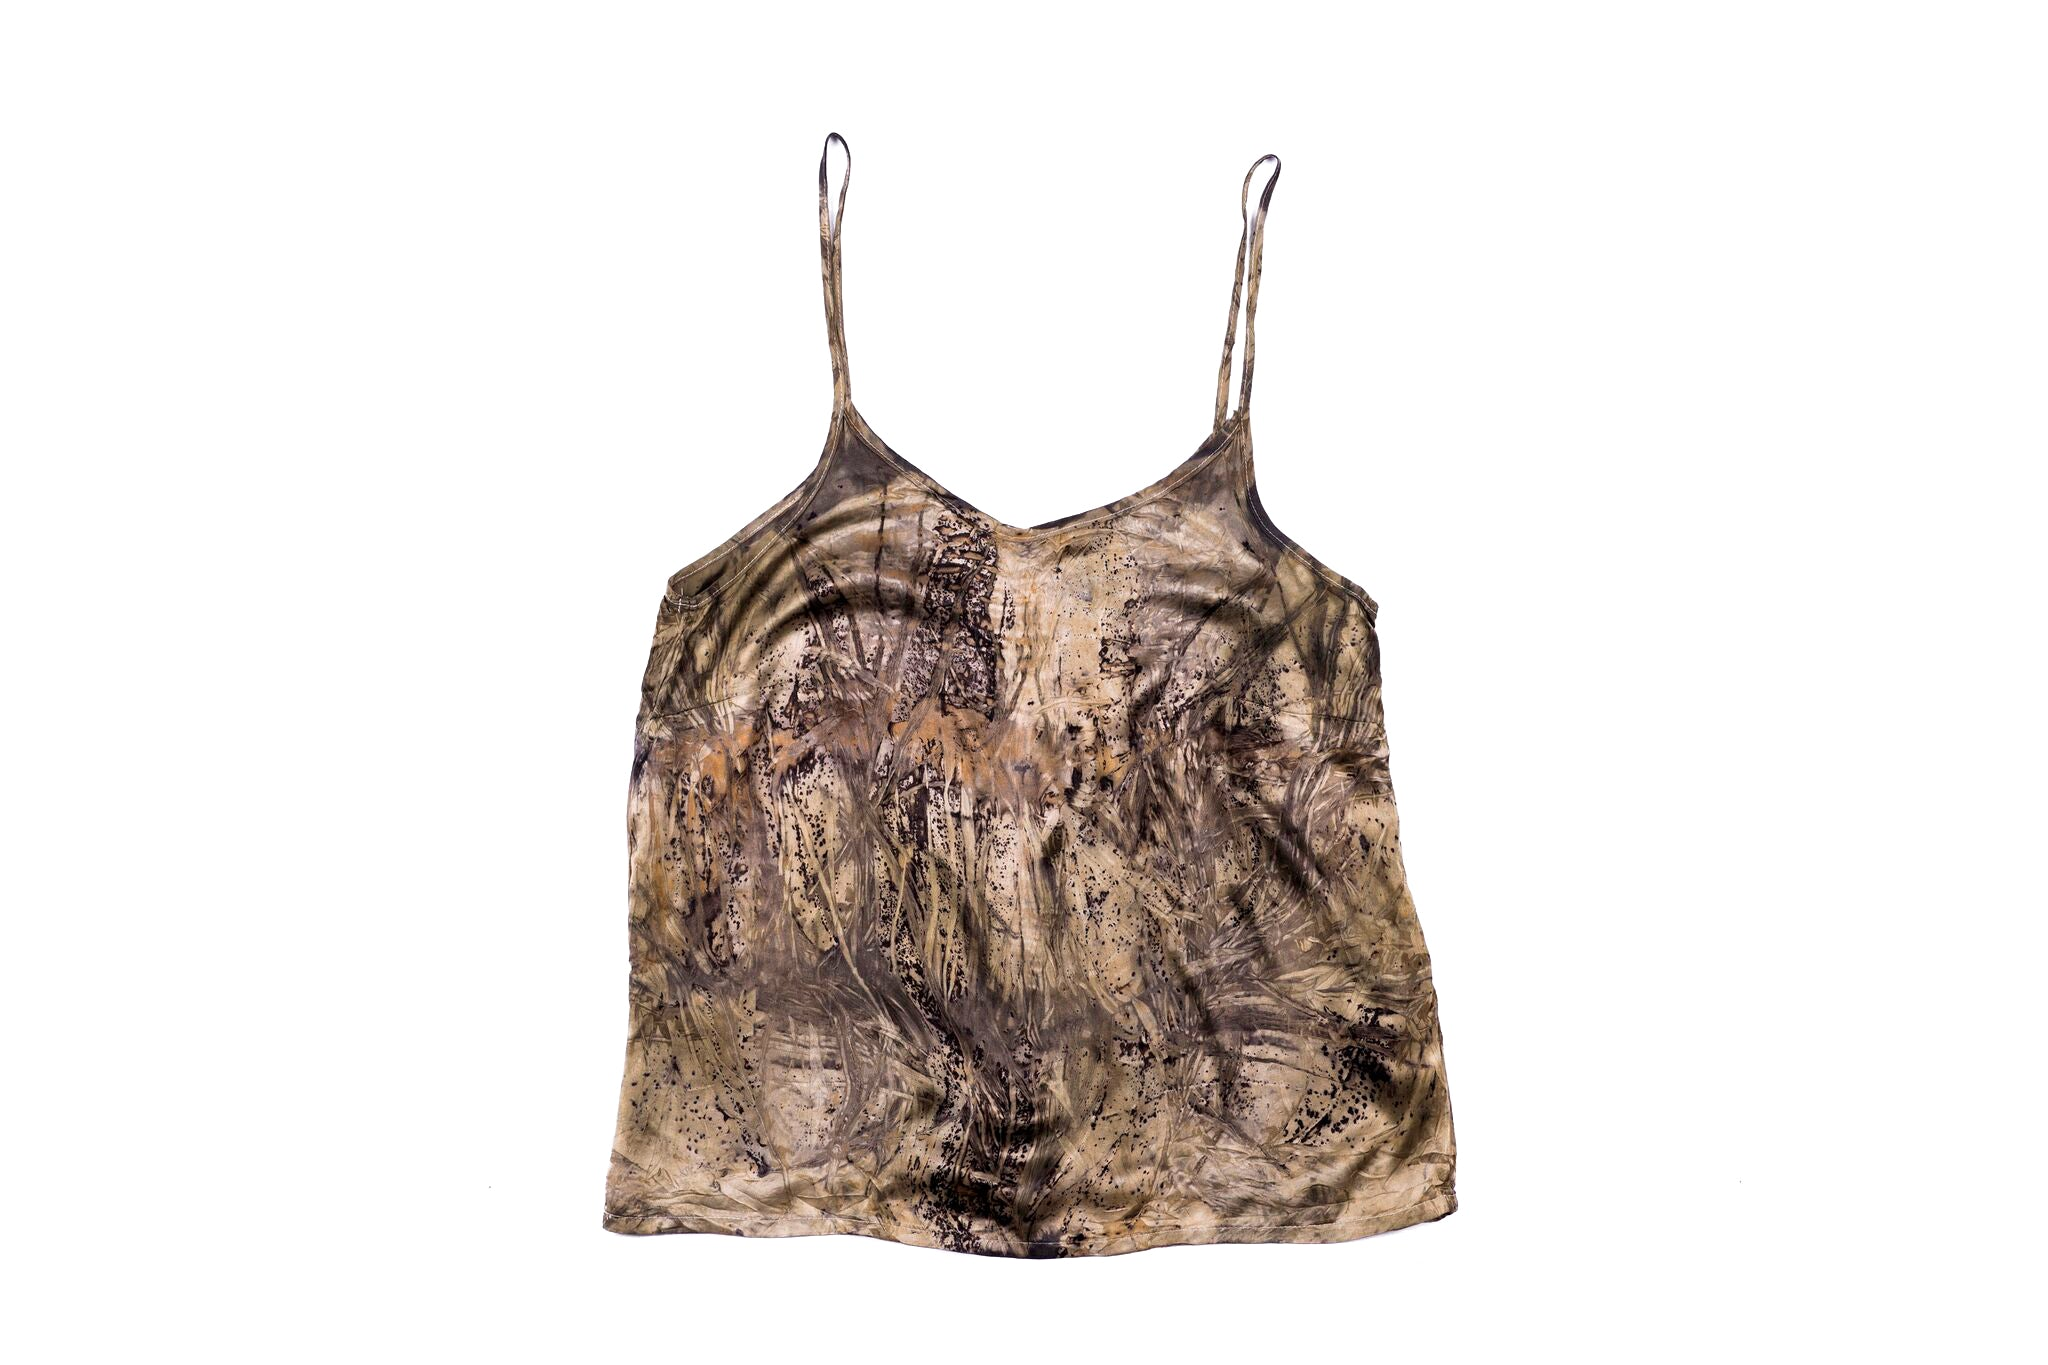 M - Bush Dyed Silk Cami by Tammy Lalara